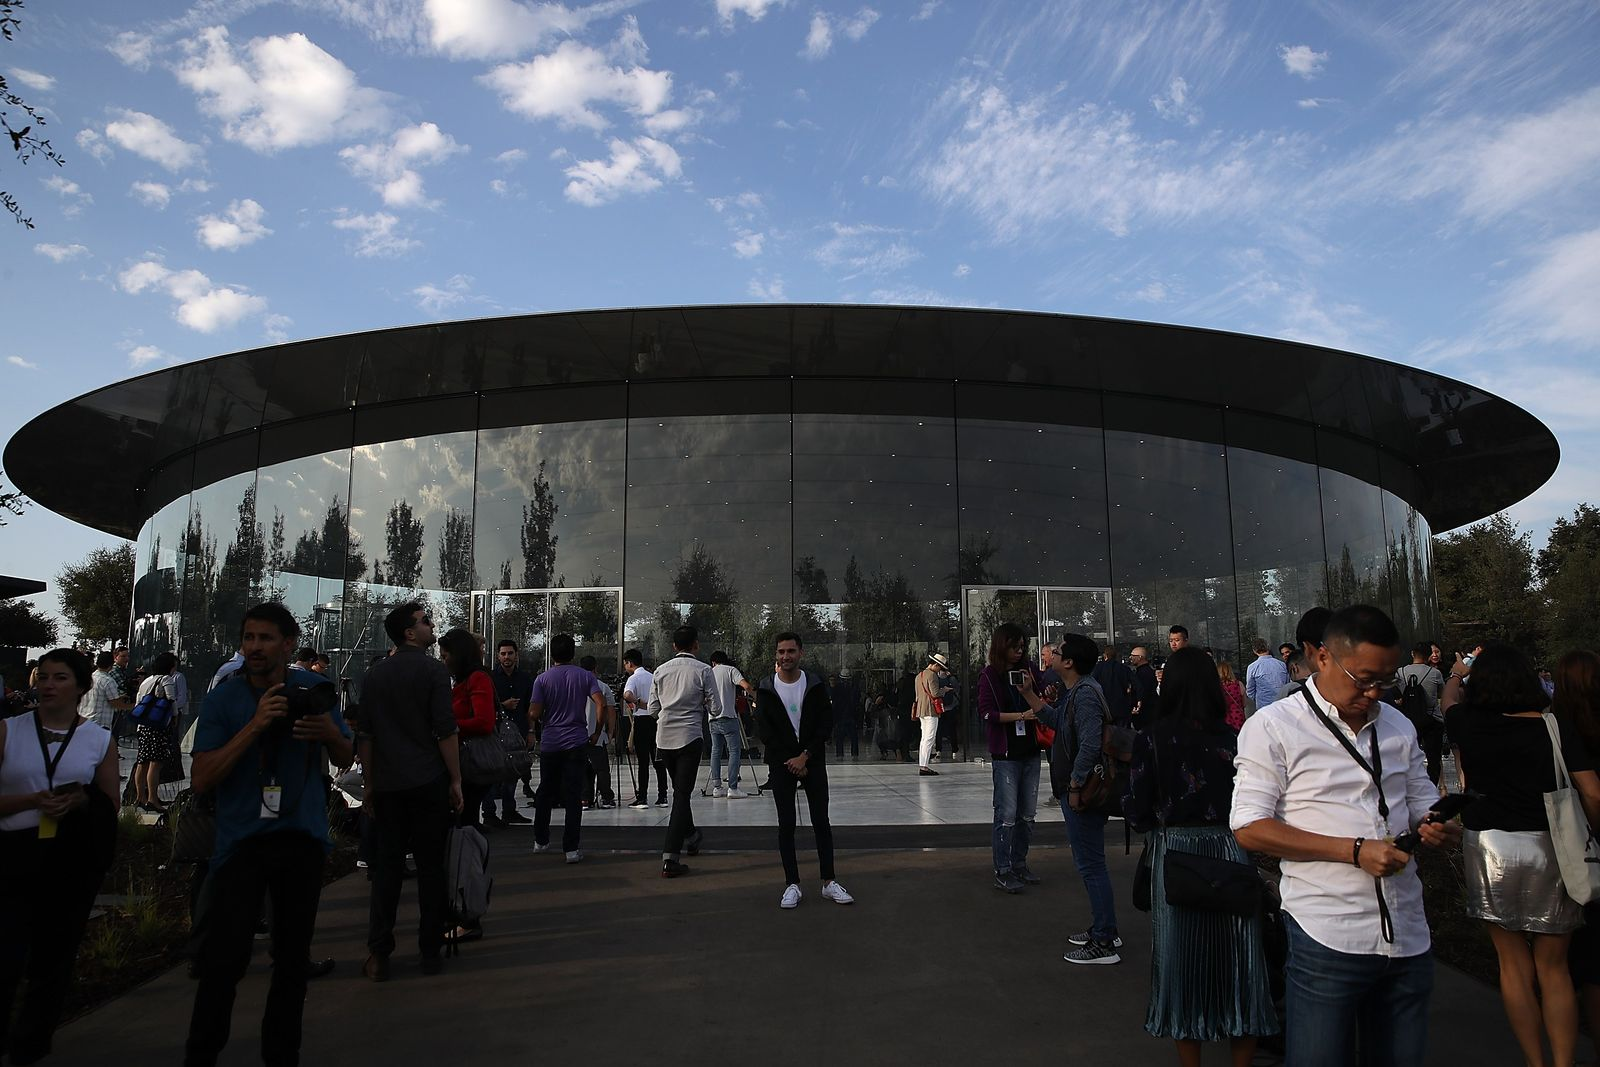 US-APPLE-HOLDS-PRODUCT-LAUNCH-EVENT-AT-NEW-CAMPUS-IN-CUPERTINO